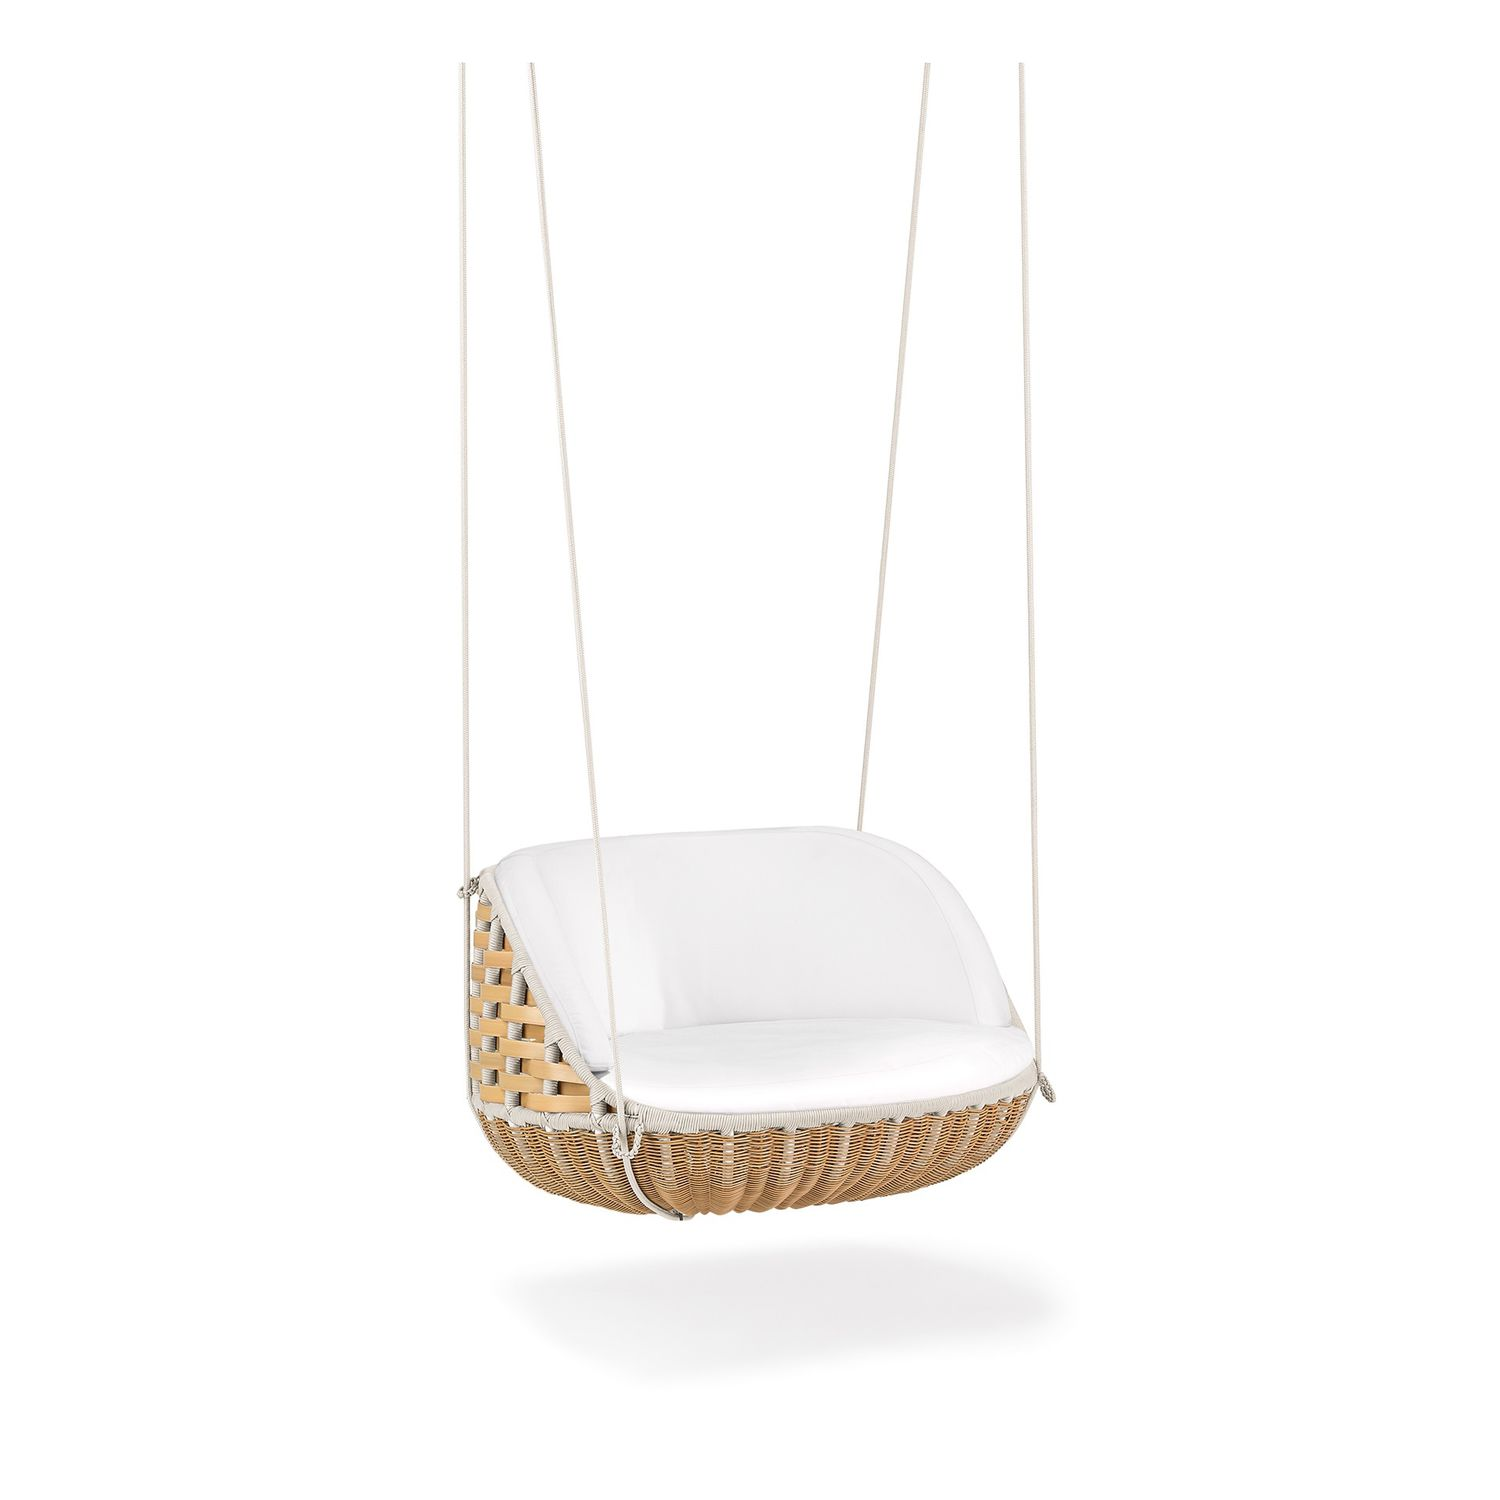 Amazing Contemporary Armchair / Resin Wicker / Hanging / Central Base   SWINGREST  By Daniel Pouzet